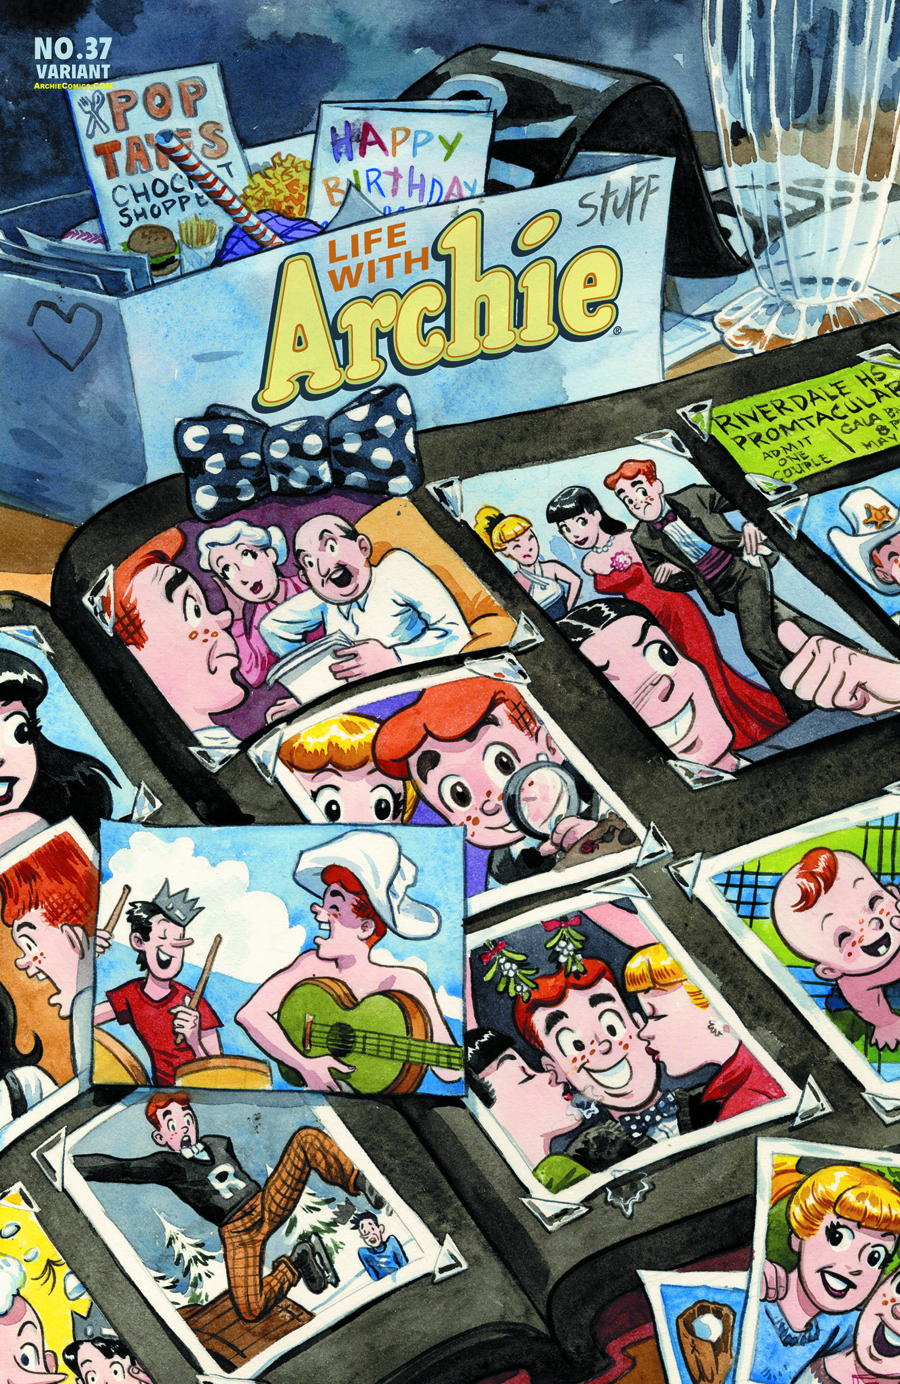 LIFE WITH ARCHIE COMIC #37 JILL THOMPSON CVR